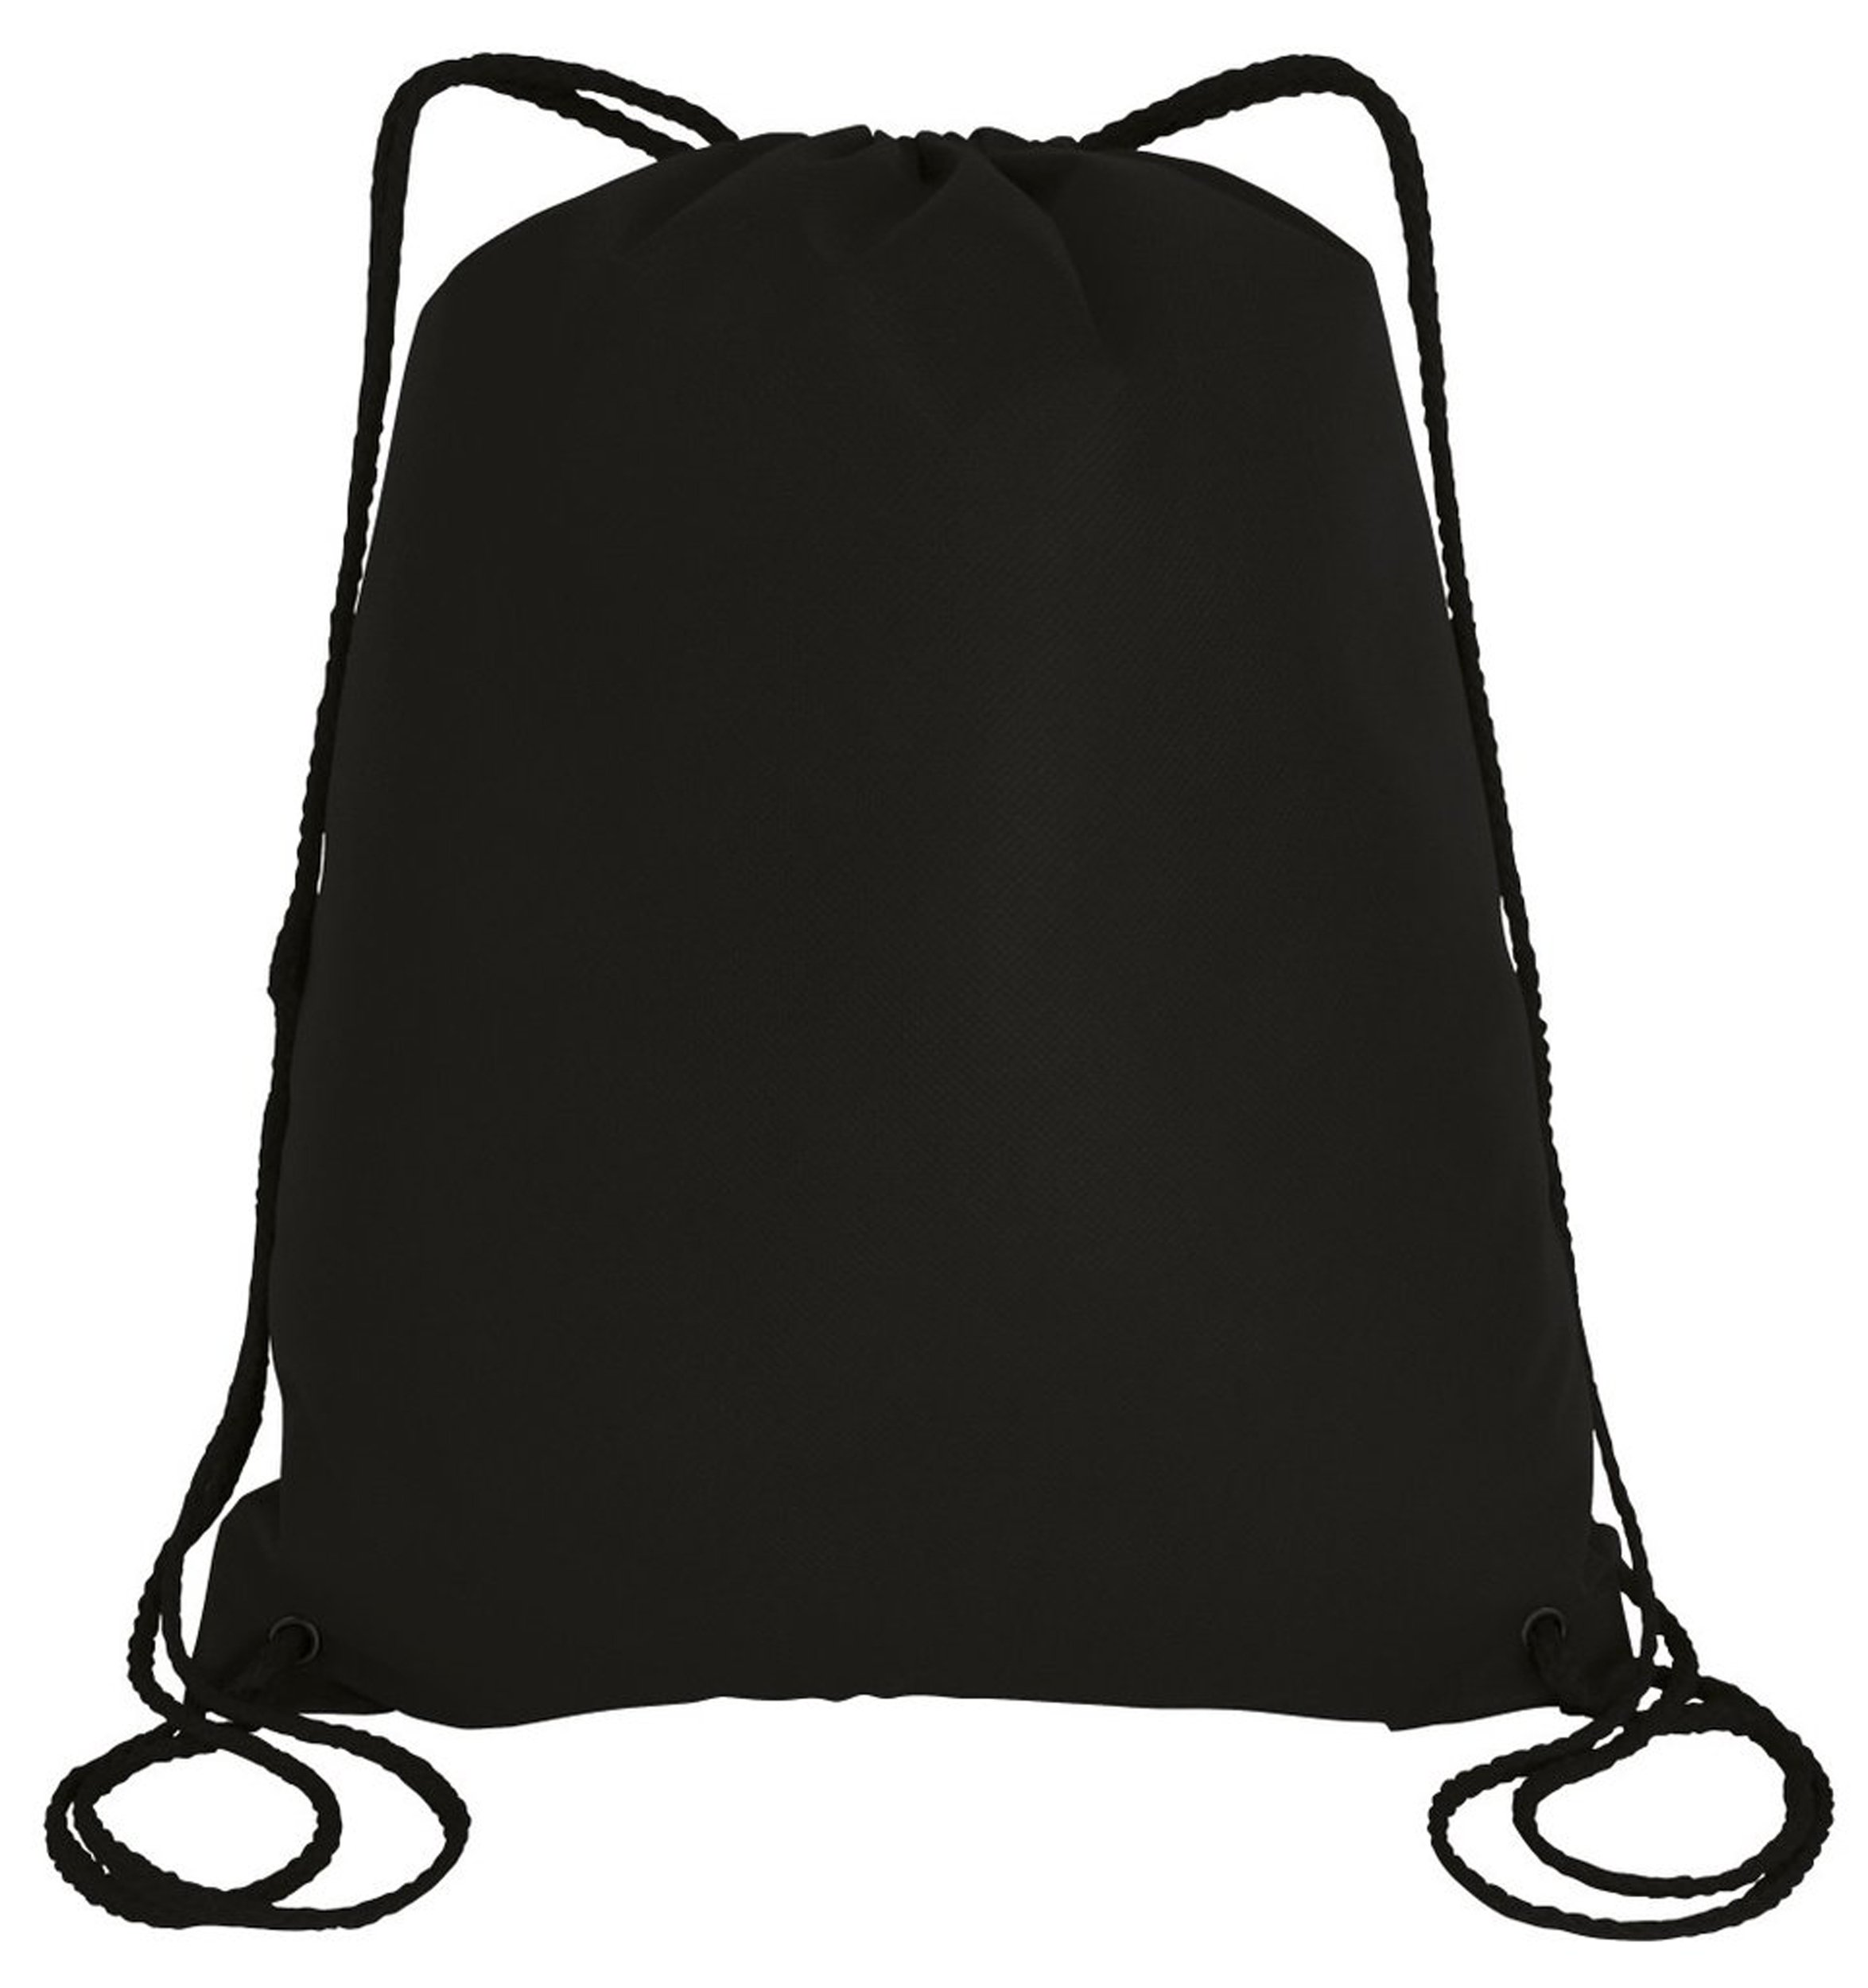 100 PACK - Large Size Multipurpose Non Woven Well Made Drawstring Backpack Bags BULK - Giveaway Church Bags School Bags Event Show bags Donation Wholesale Cheap Drawstring Backpacks (Black)